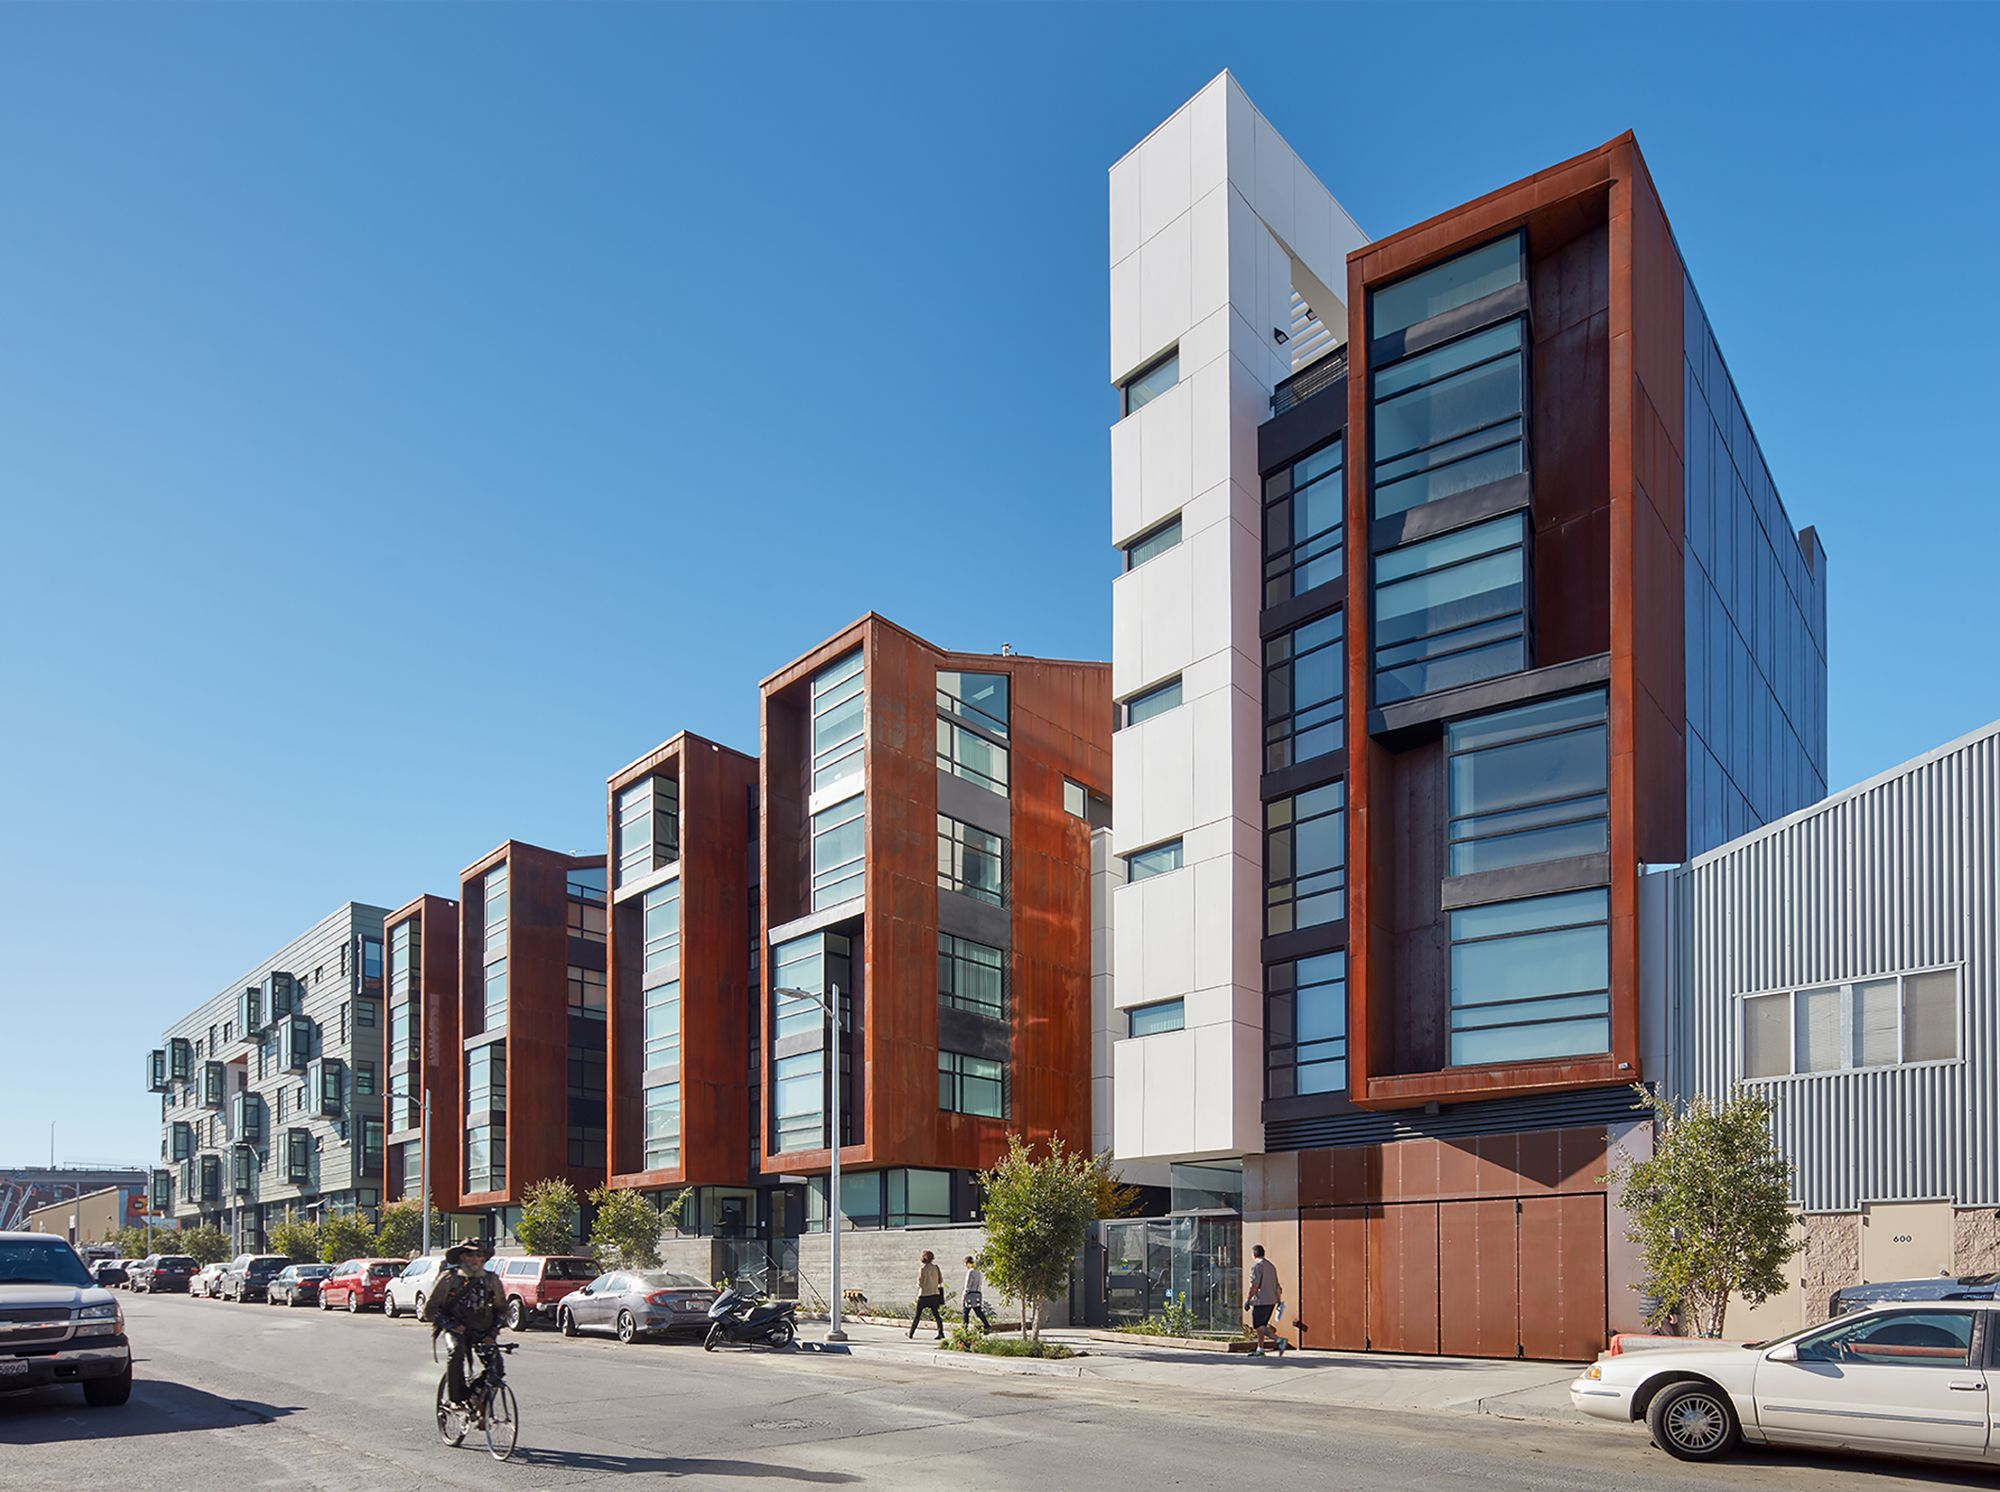 M Building Kennerly Architecture Planning Architecture Plan Residential Building Design Architecture